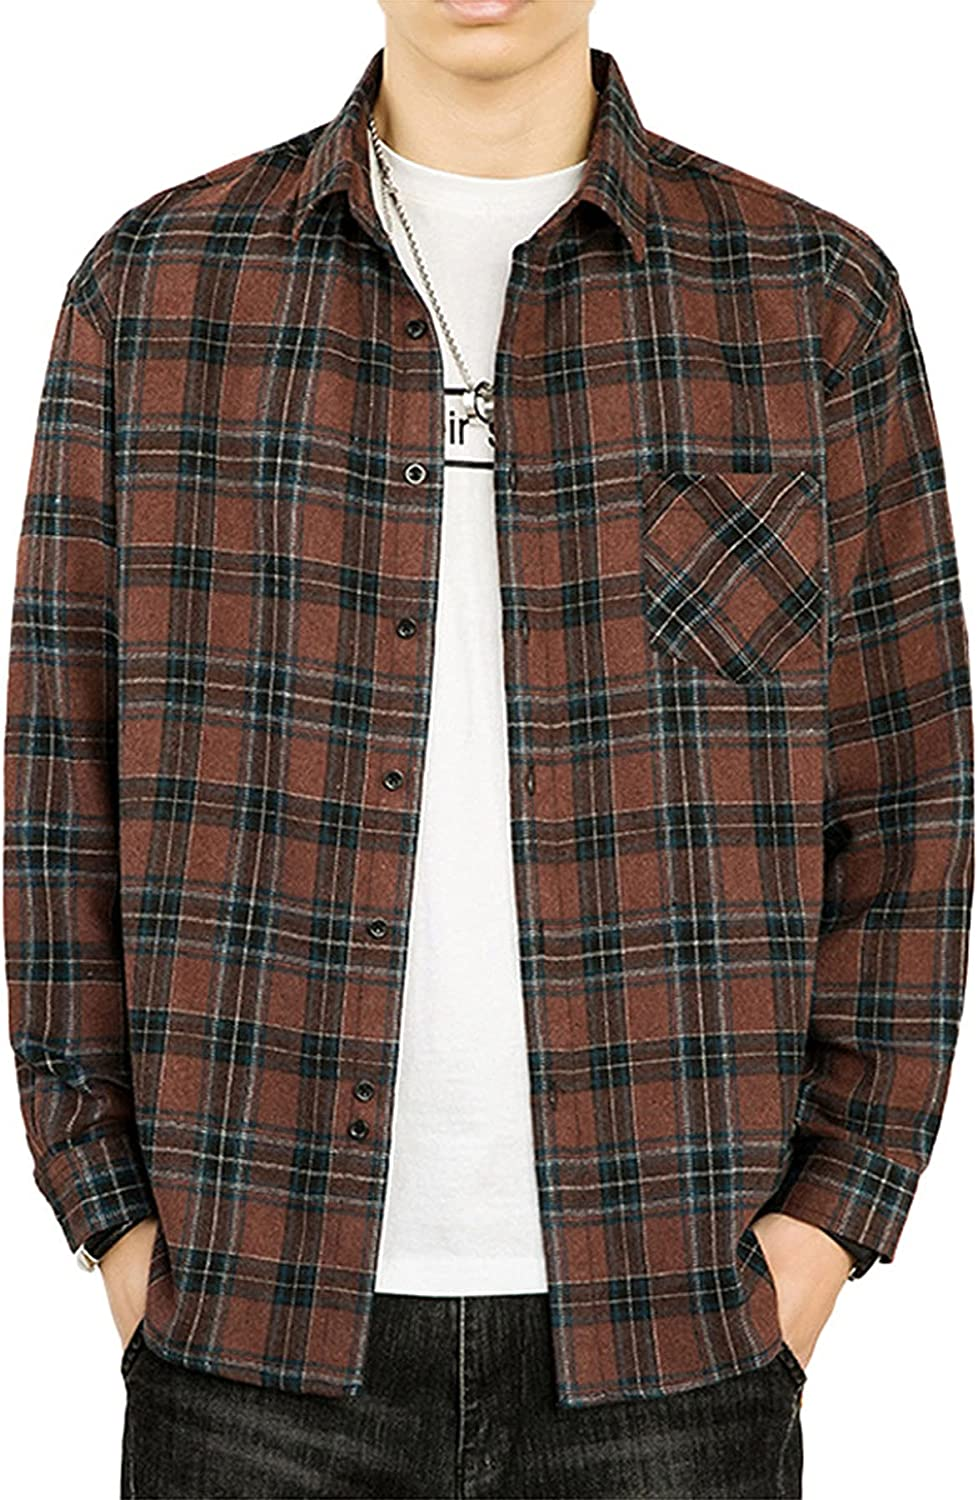 Men's Classic Lattice Shirt Long-Sleeved Plaid Loose Fit Shirt Full Button Down with Pocket